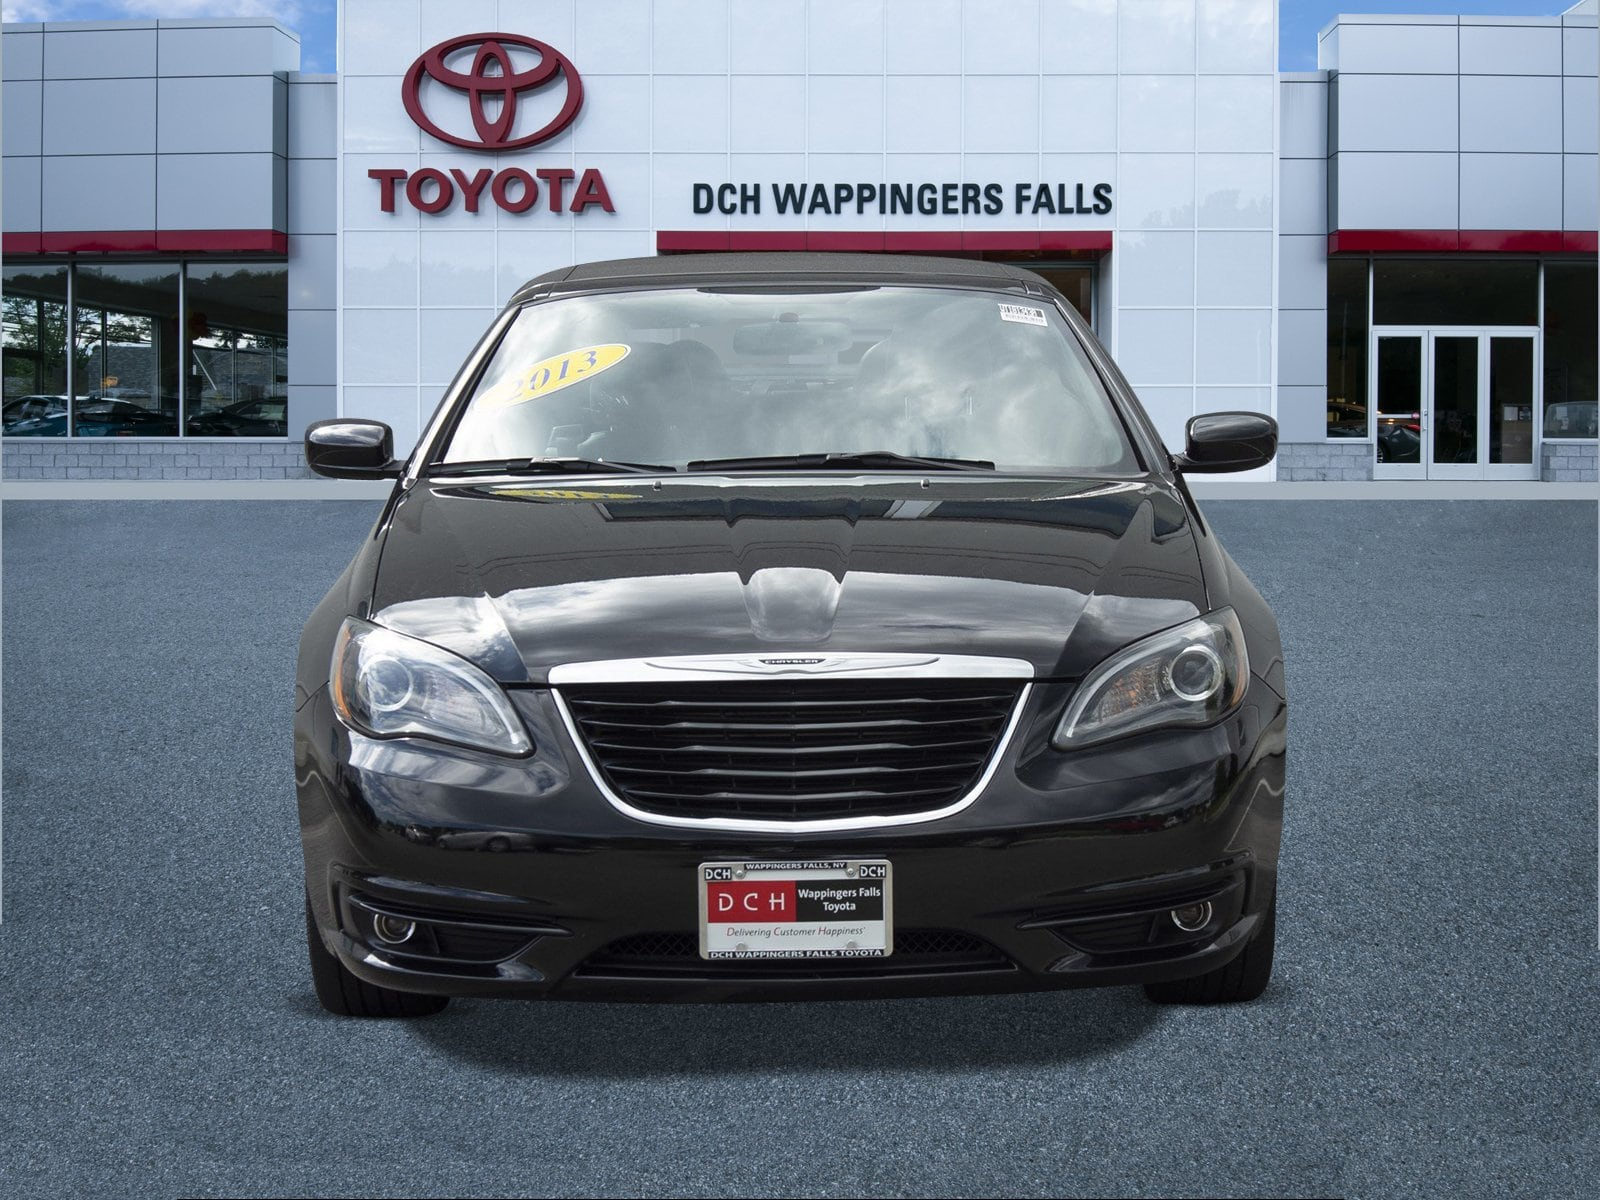 used 2013 chrysler 200 for sale wappingers falls ny